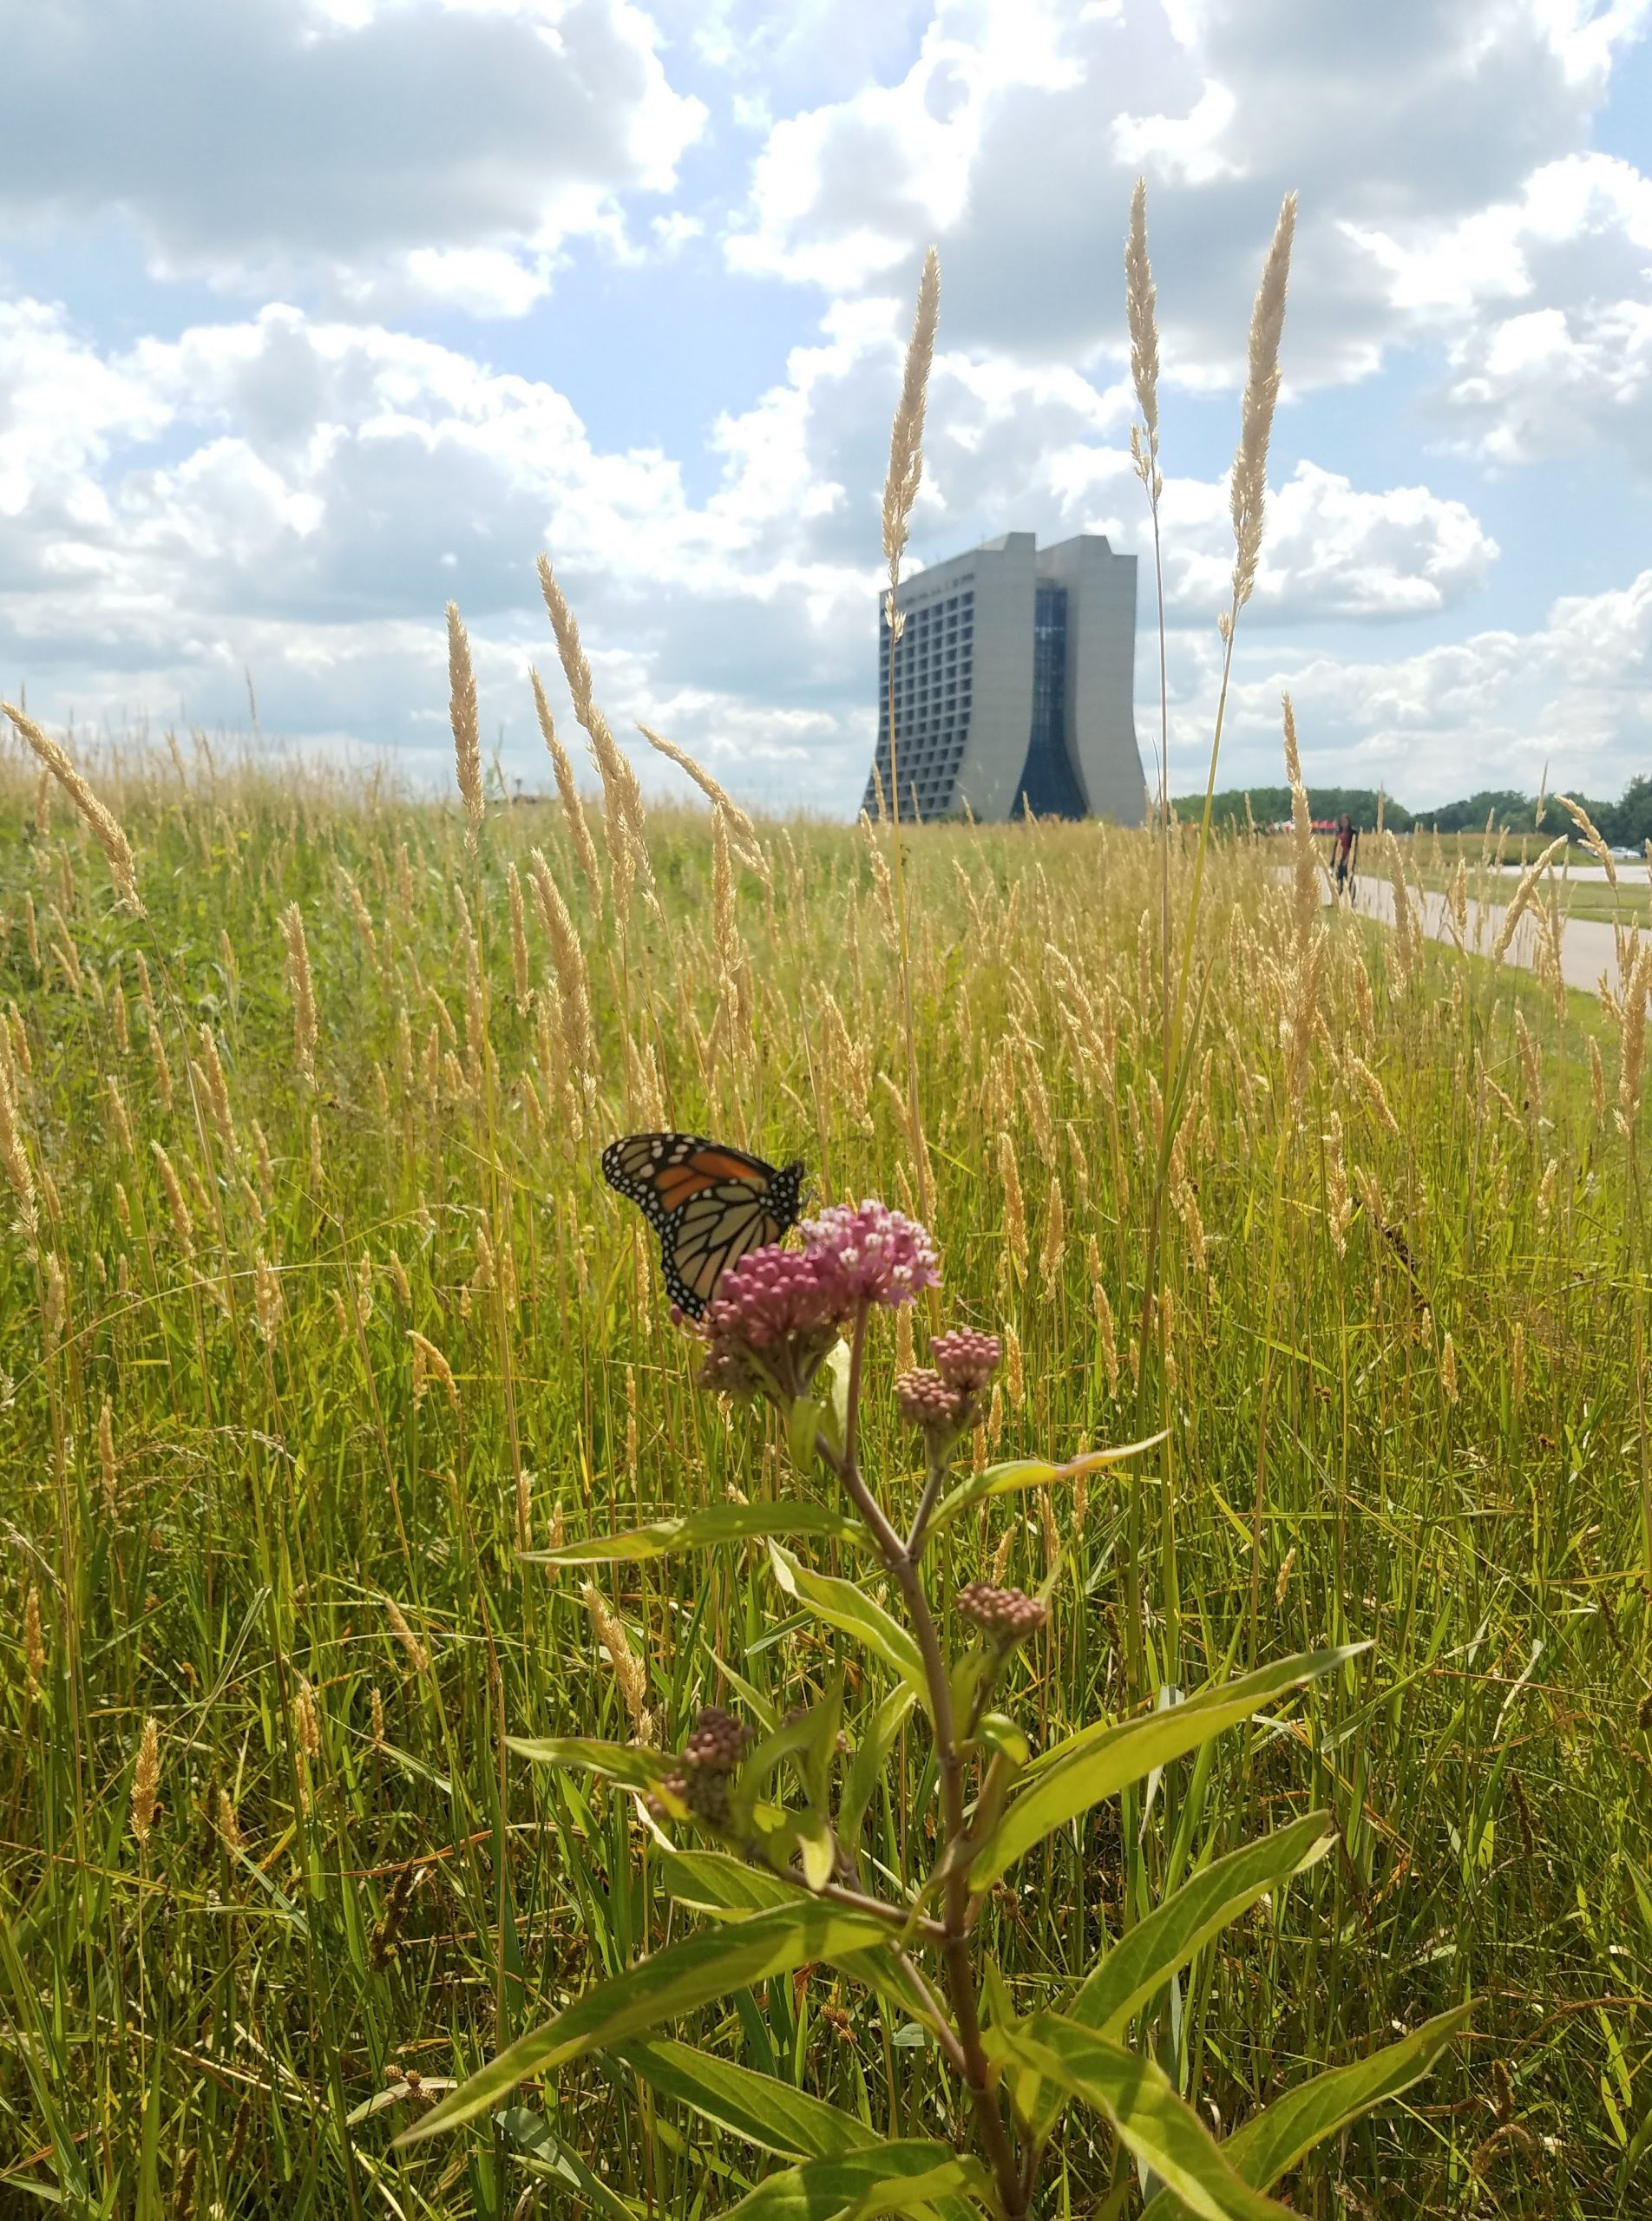 In spring 2019, a butterfly alights on a flower, with Wilson Hall in the background. nature, wildlife, animal, insect, butterfly, prairie, building, Wilson Hall, landscape, spring Photo: Marilyn Wodzinski